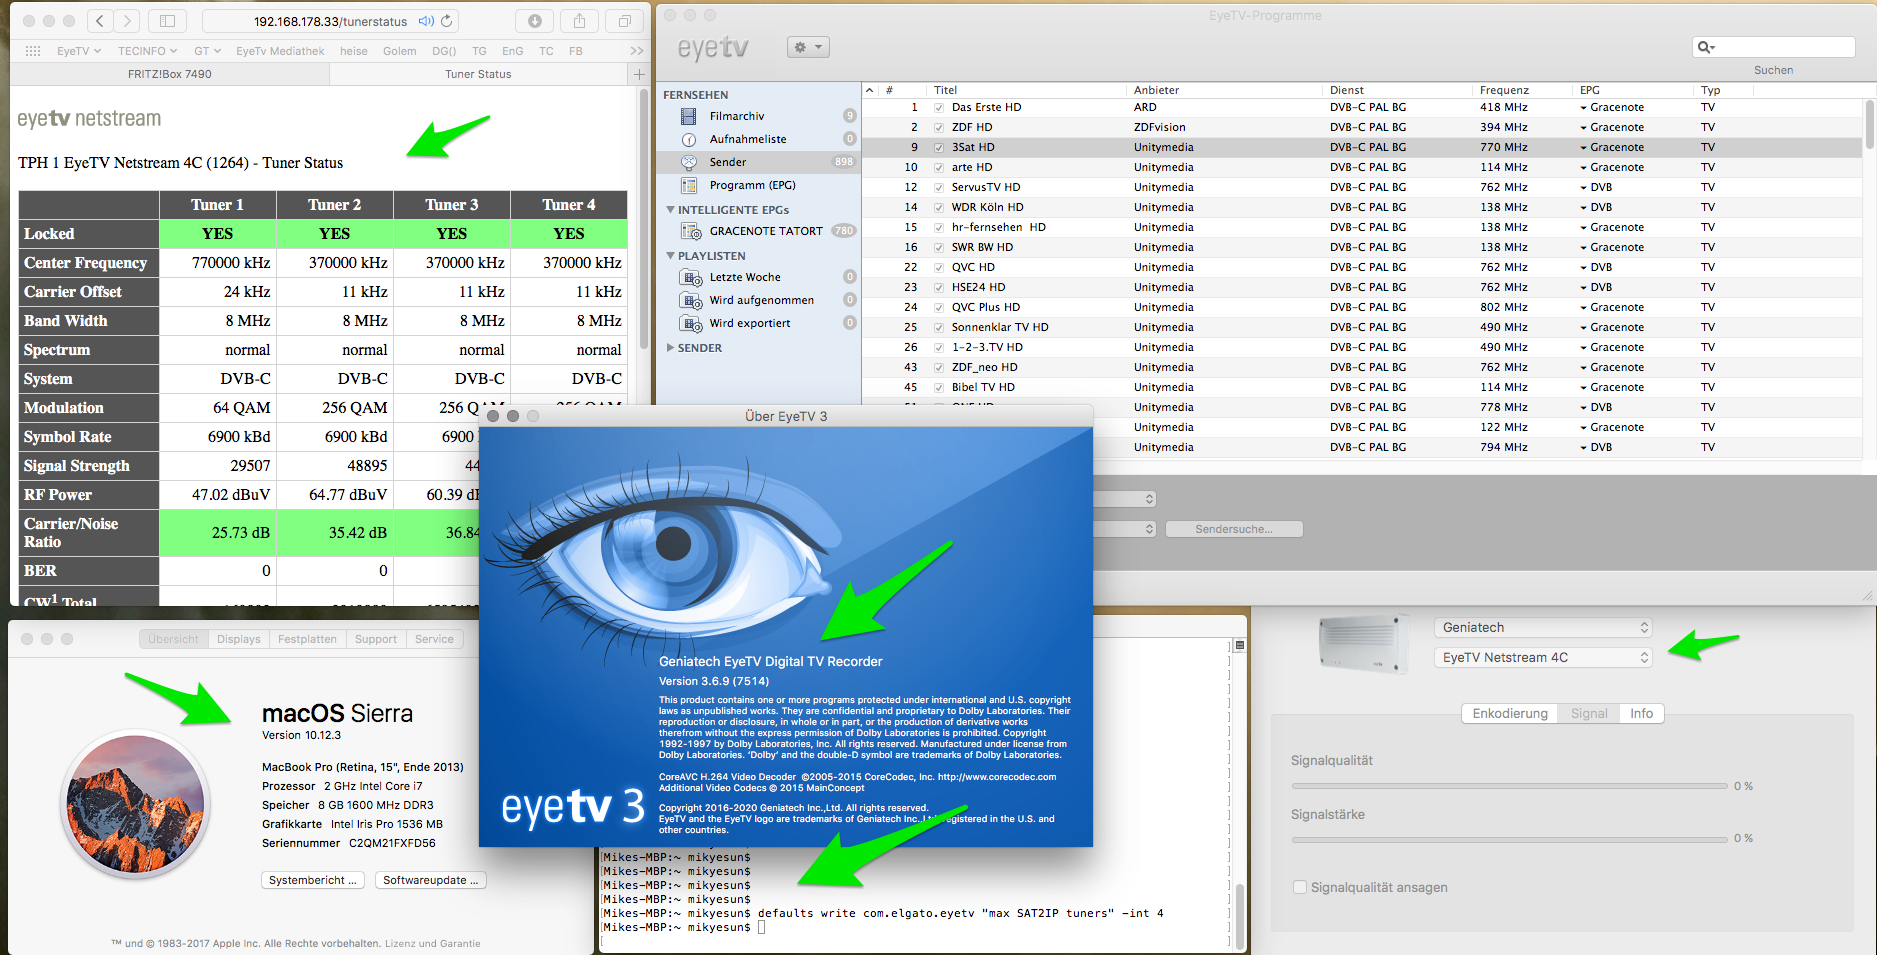 How do I receive 4 channels from EyeTV Netstream 4Sat on my